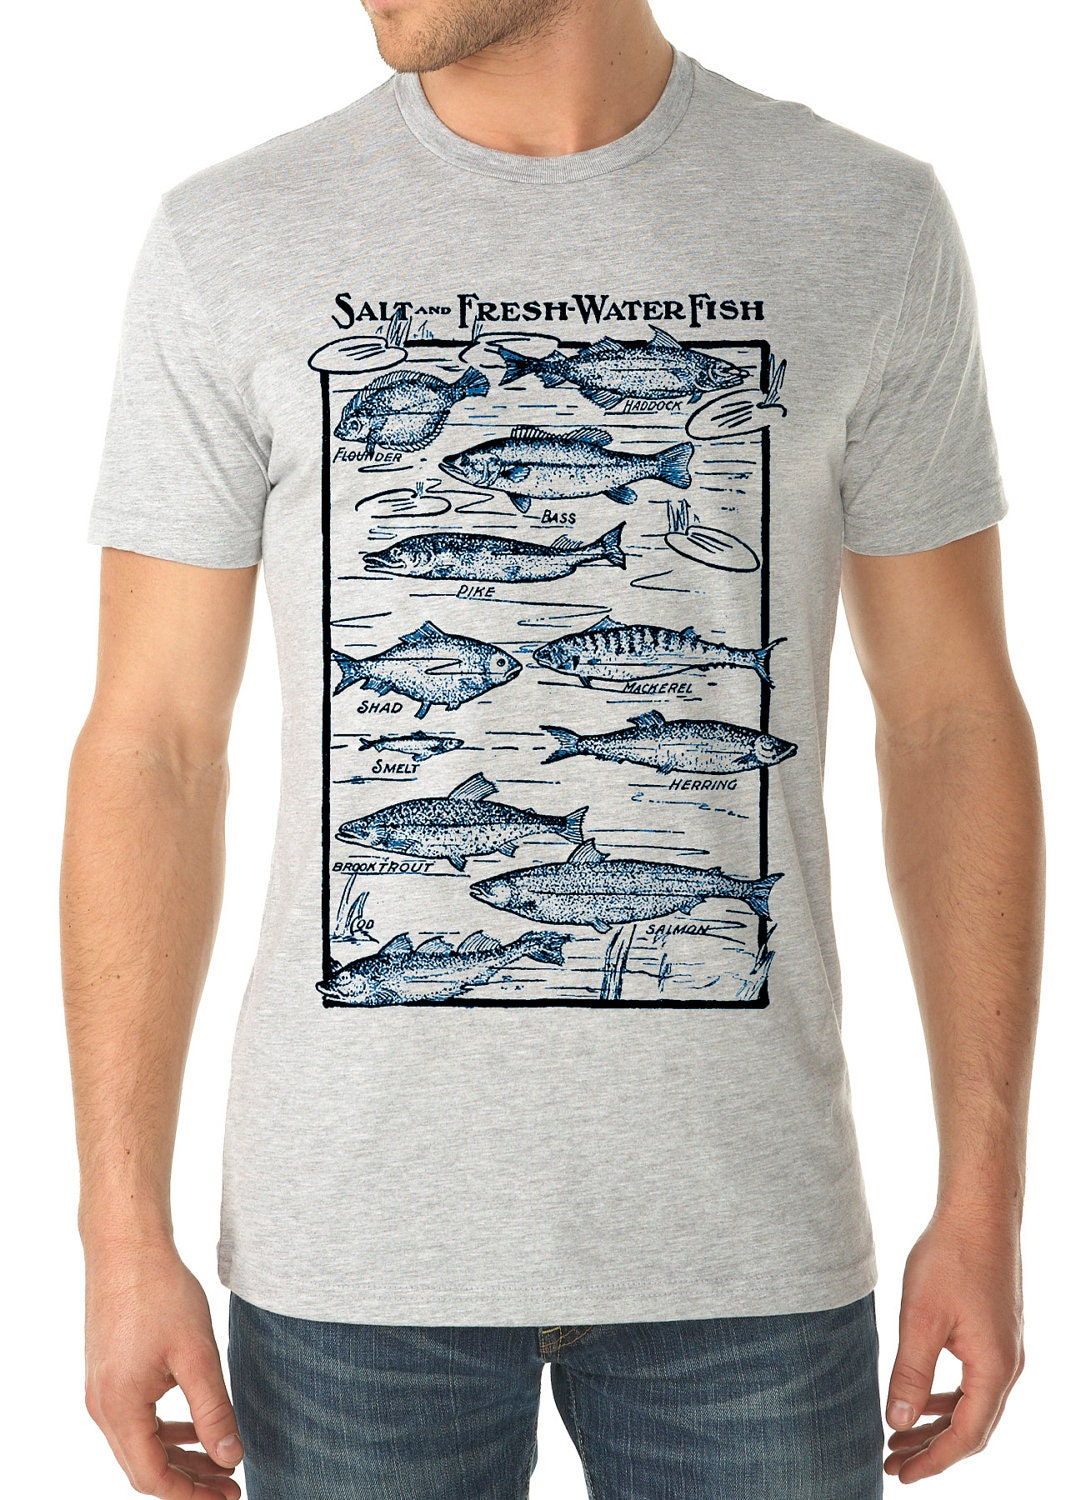 Fishing shirt fishing gift fishing tshirts mens tshirt for Mens fishing shirts